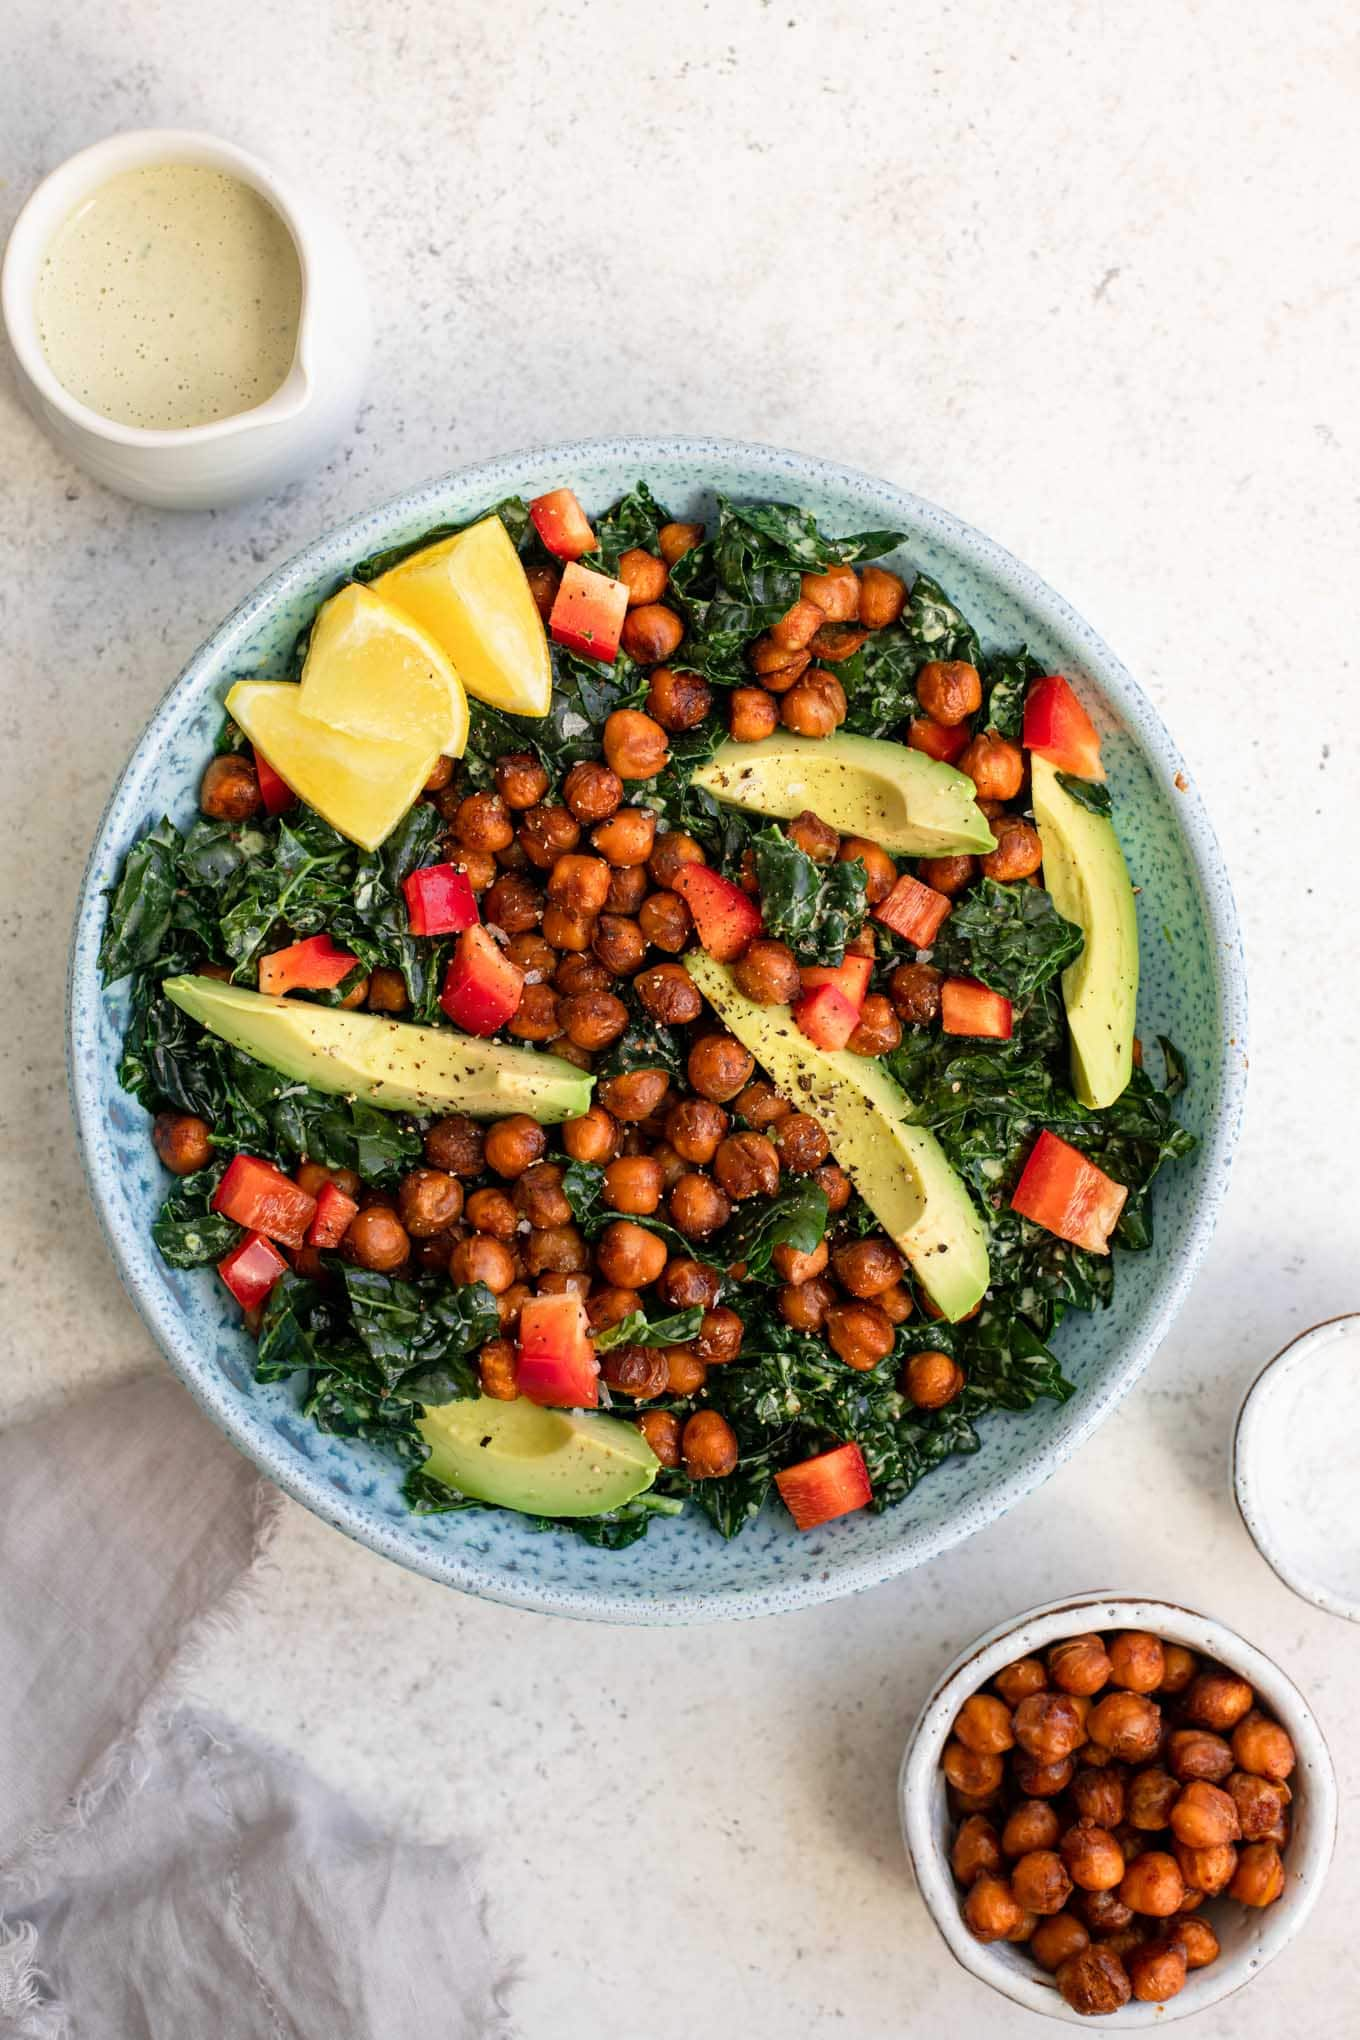 kale salad with smoky chickpeas and avocado in a bowl with lemon wedges and a side of dressing